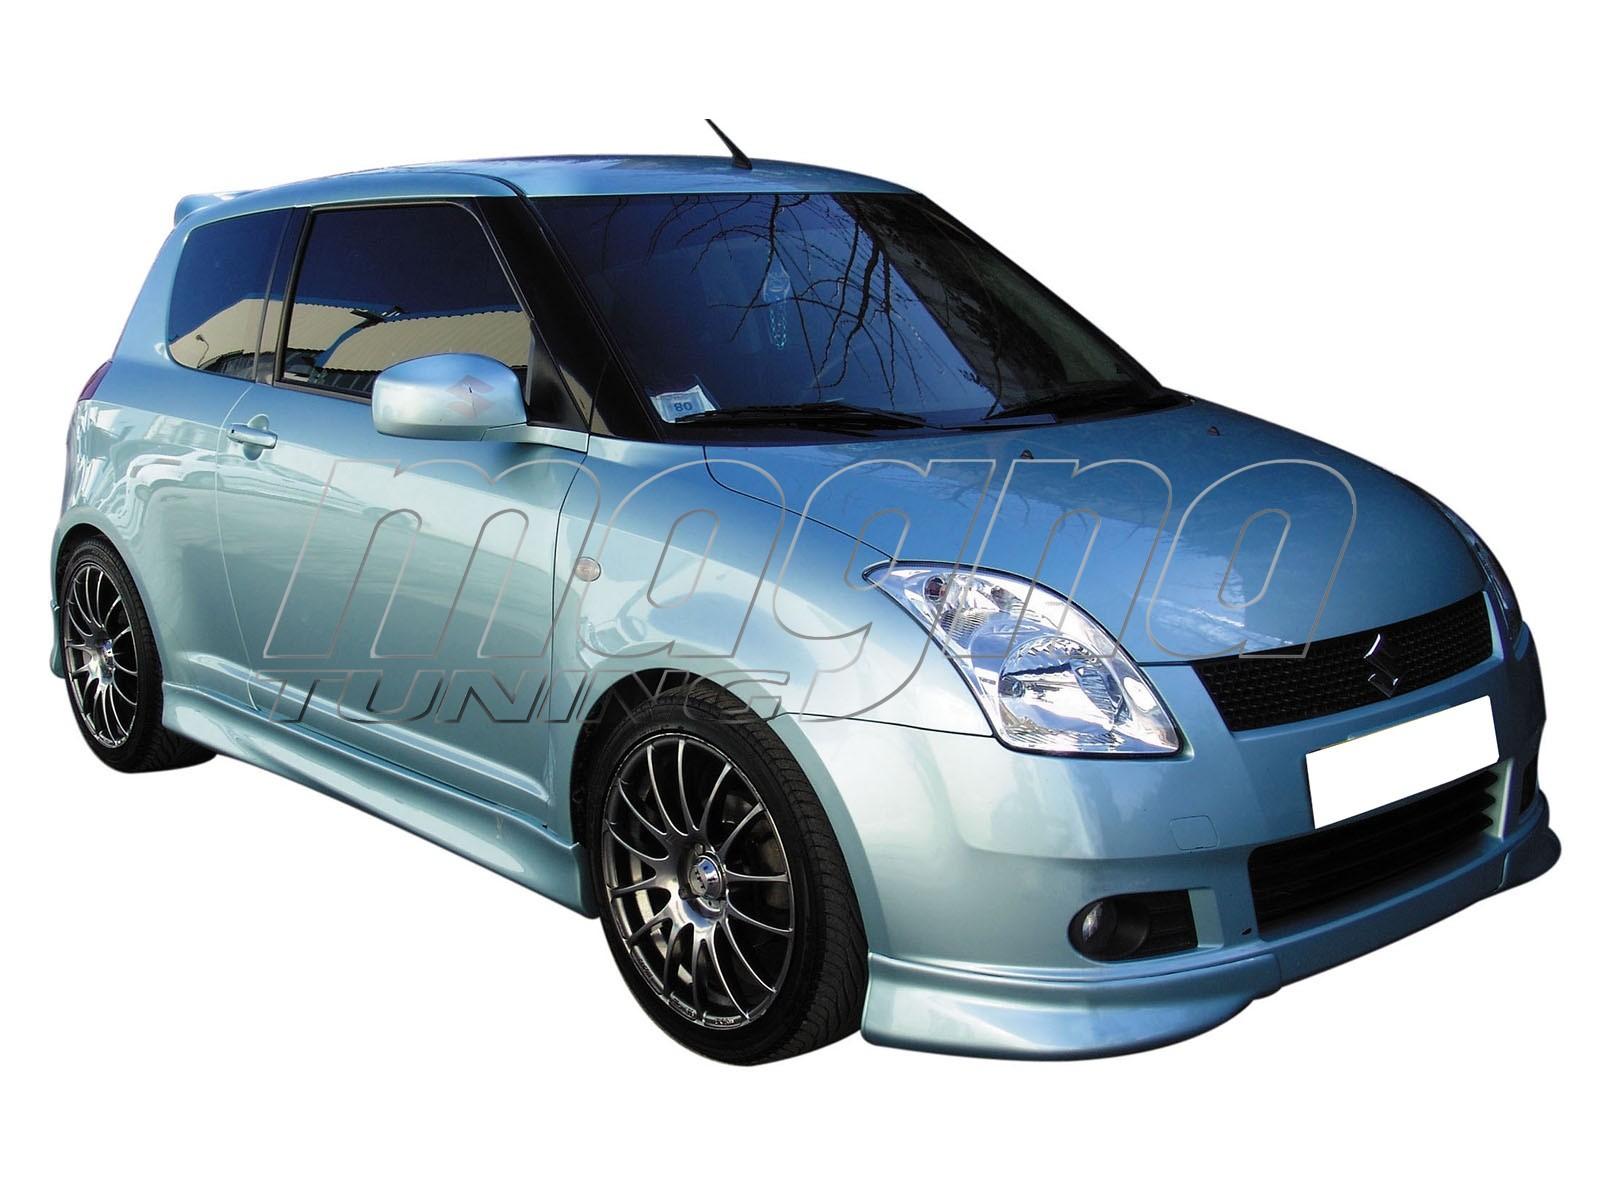 suzuki swift mk2 sport body kit. Black Bedroom Furniture Sets. Home Design Ideas